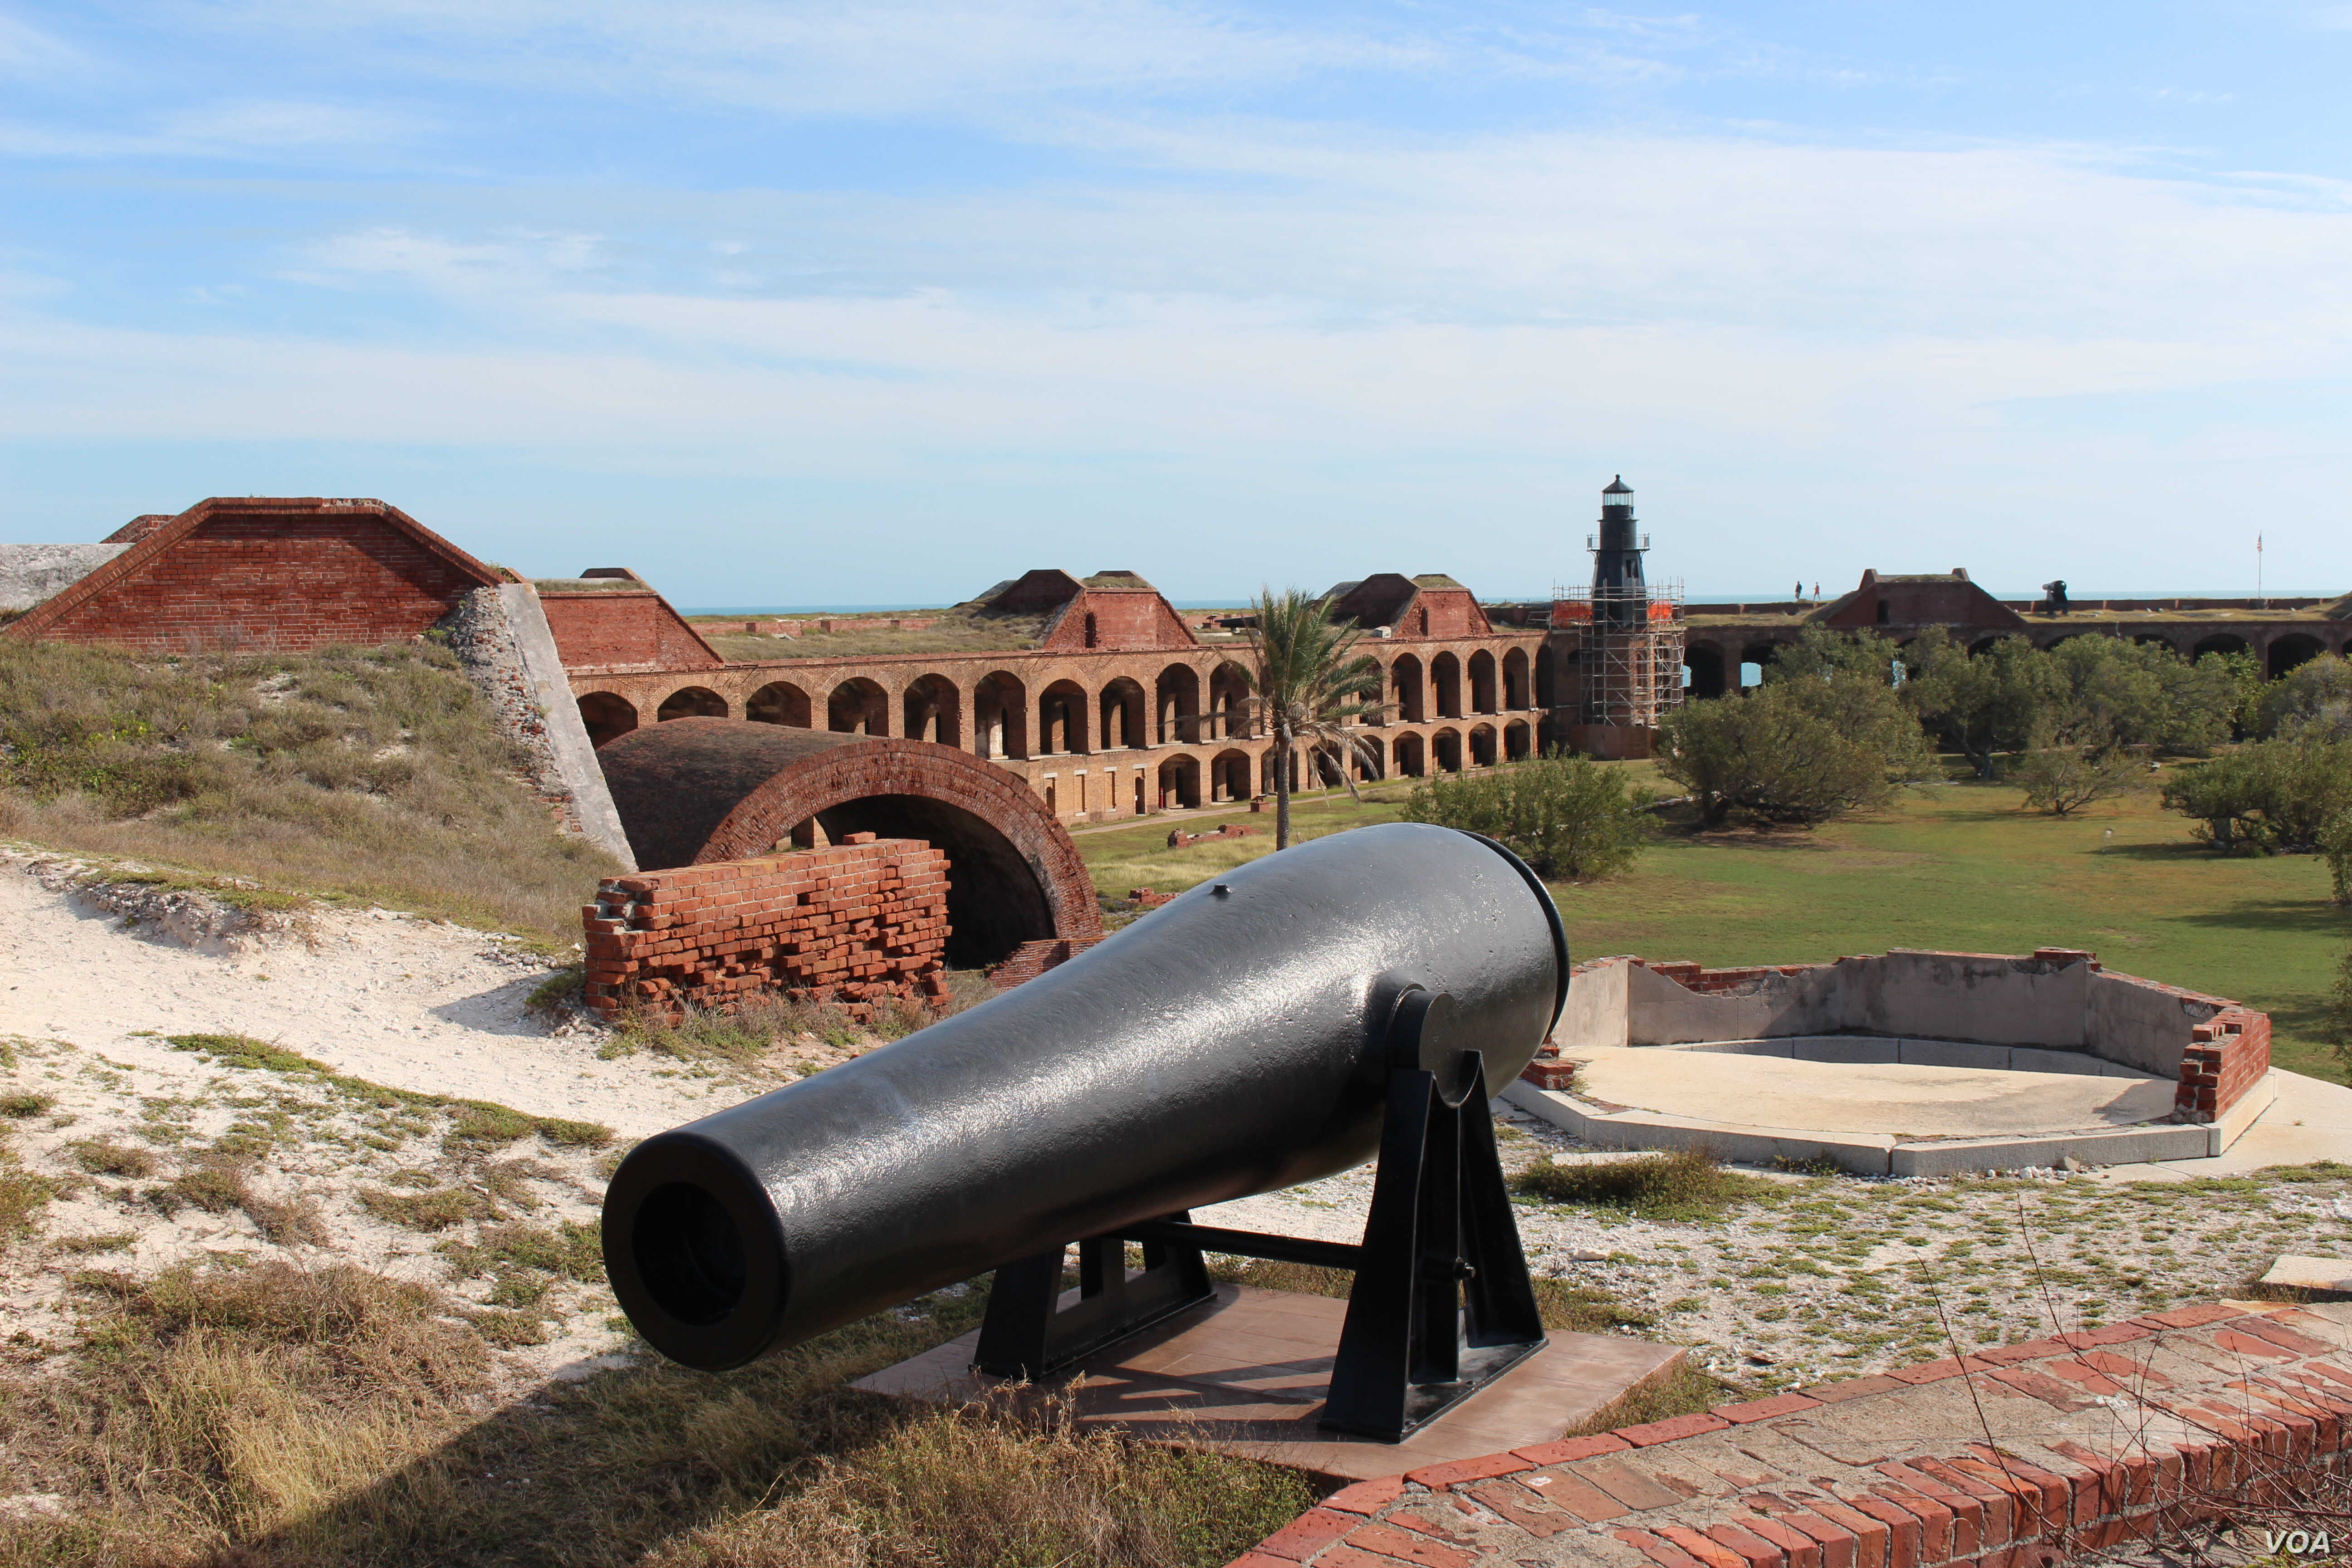 Nestled within the islands and shoals that make up the Dry Tortugas, the harbor overlooked by Fort Jefferson offered ships the chance to resupply, refit, or seek refuge from storms.